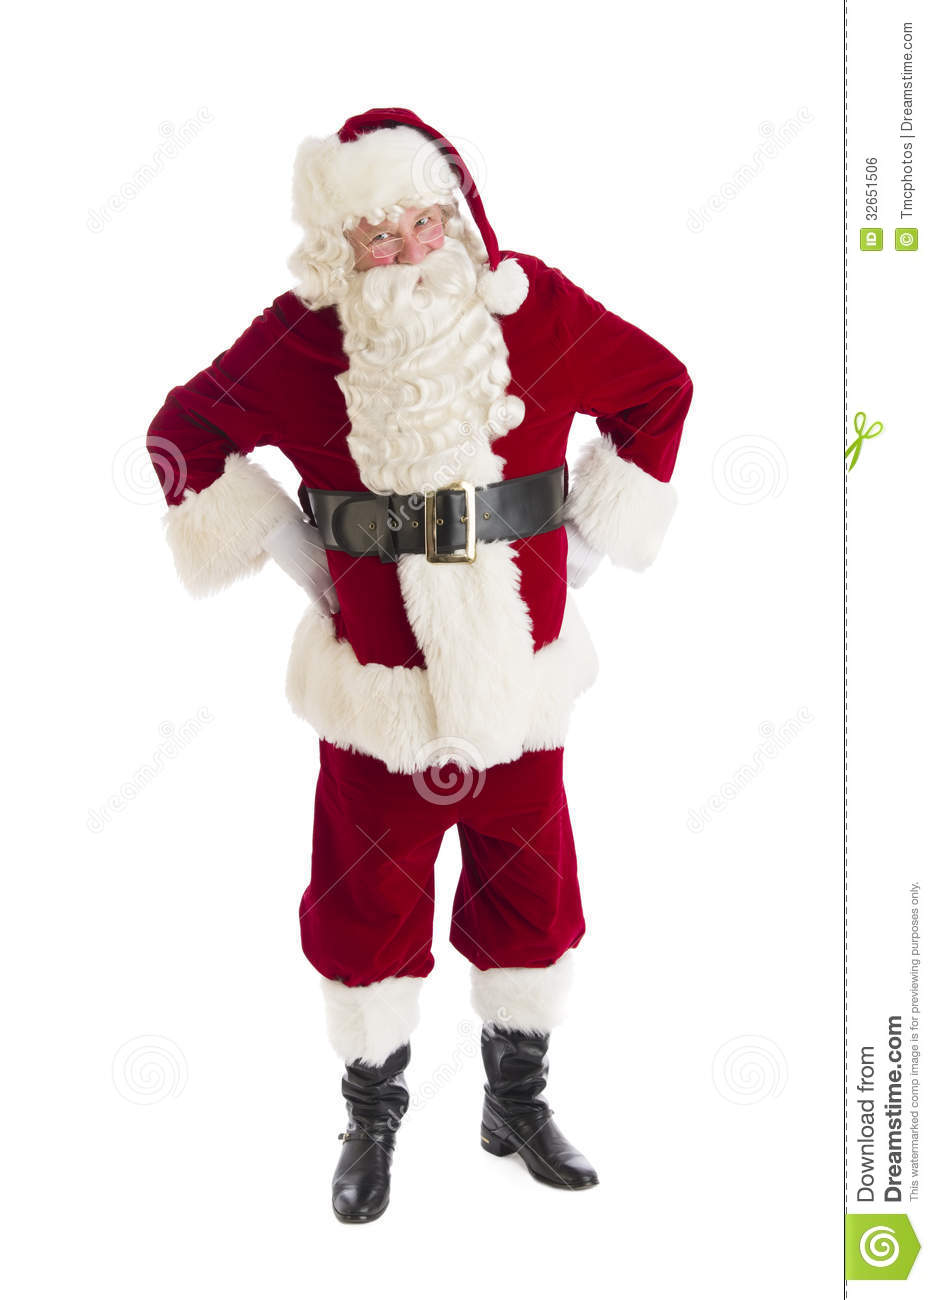 Santa Claus Standing With Hands On Hips Royalty Free Stock